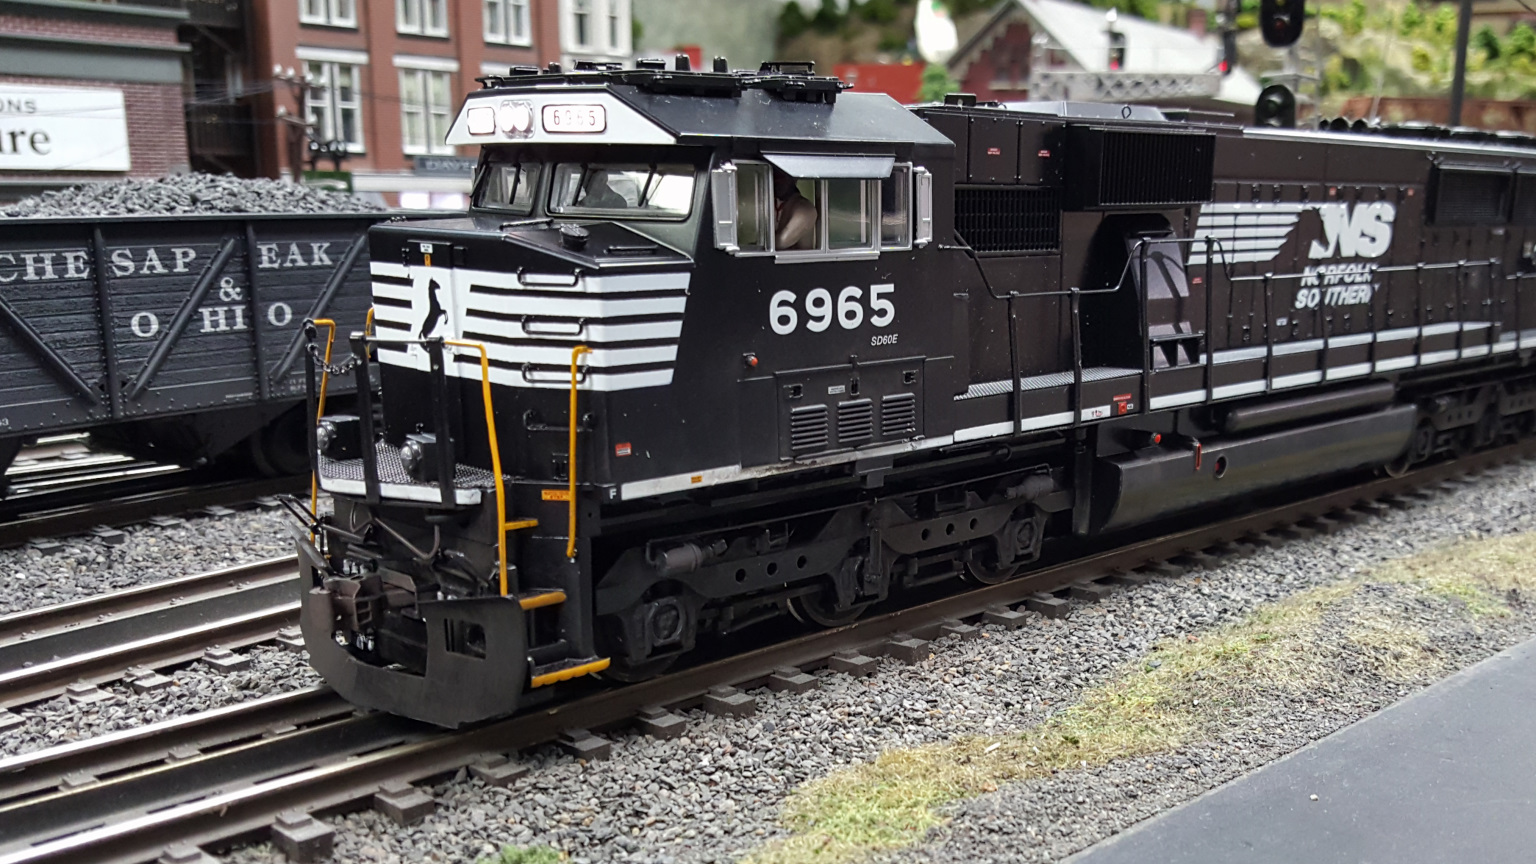 mth proto scale 3 2 3 rail 2 rail conversion o gauge railroading on line forum. Black Bedroom Furniture Sets. Home Design Ideas